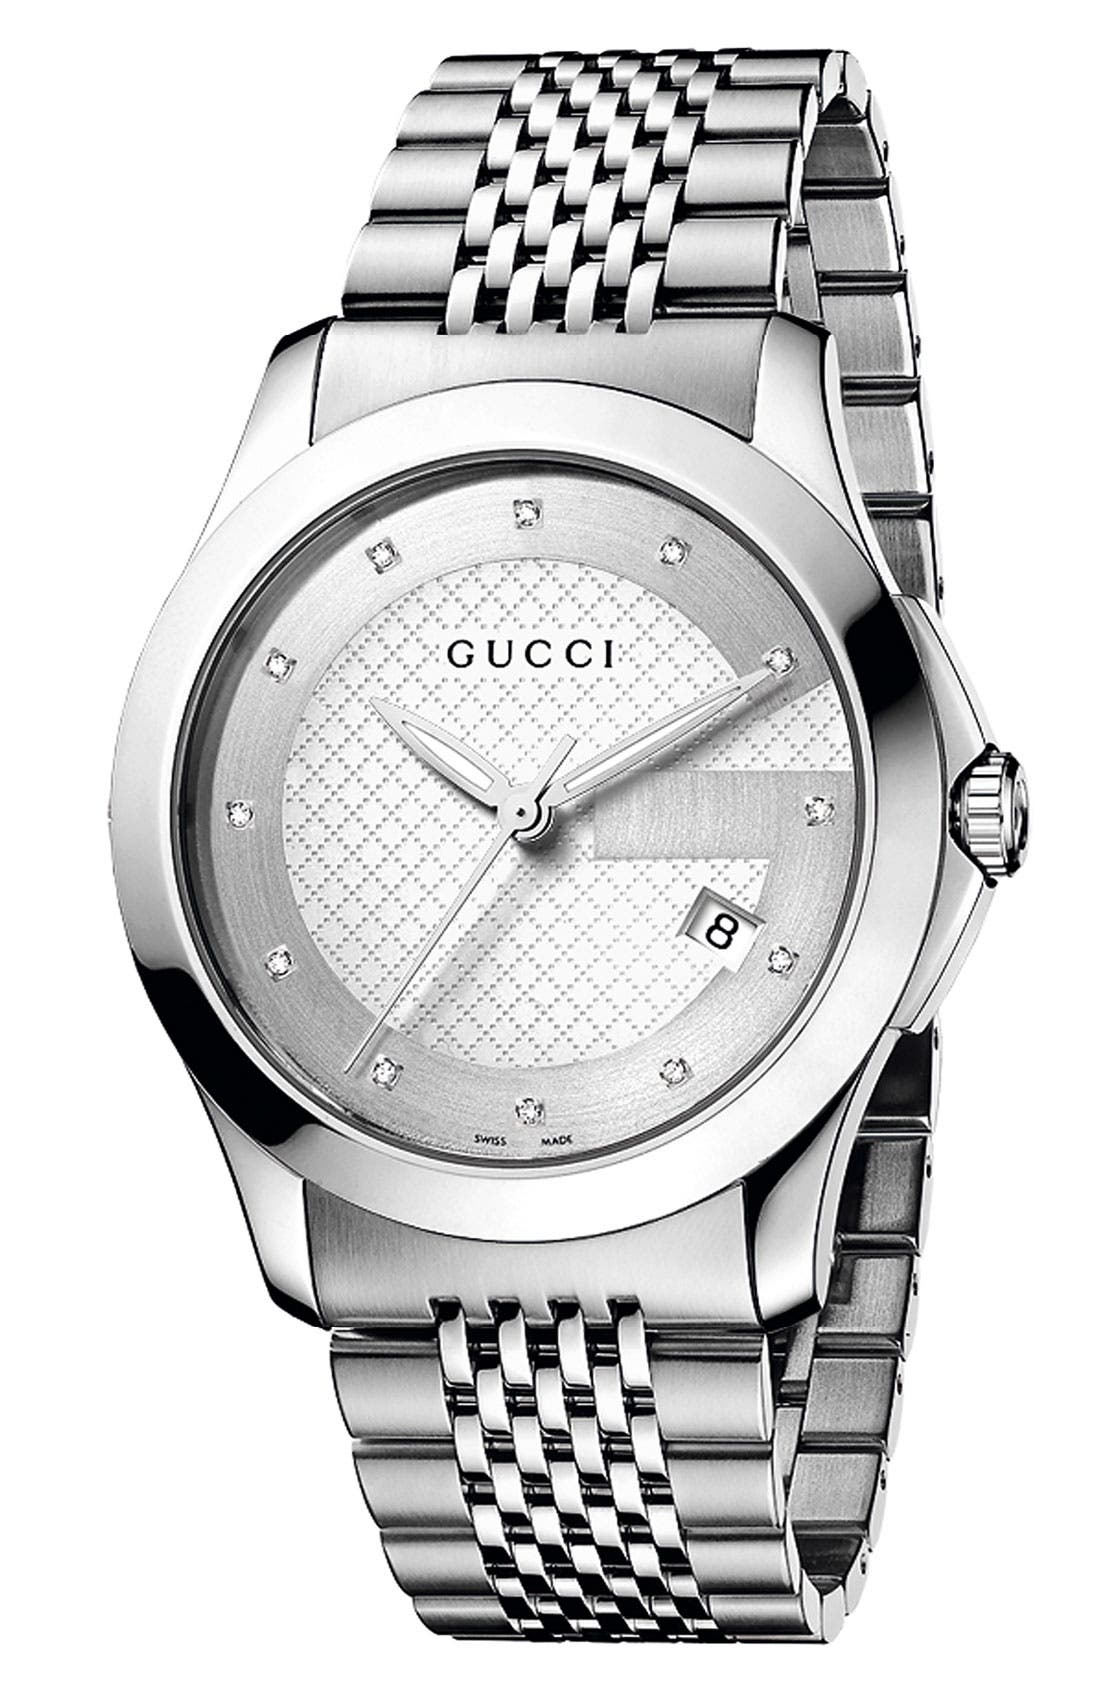 Main Image - Gucci 'G Timeless' Diamond Dial Bracelet Watch